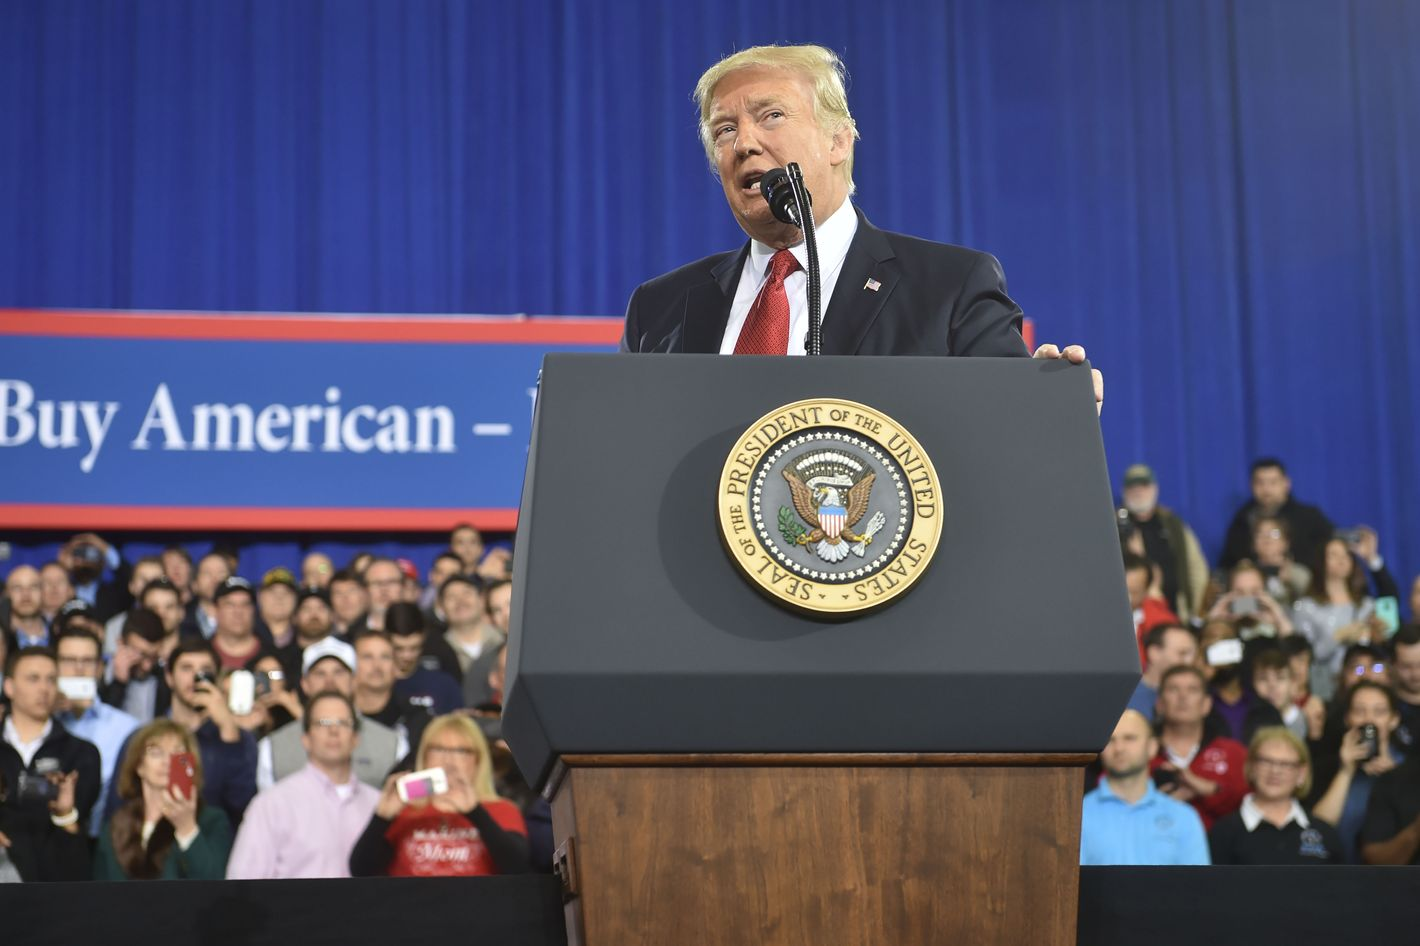 trump targets h-1b visas; for real reform, he'll need help